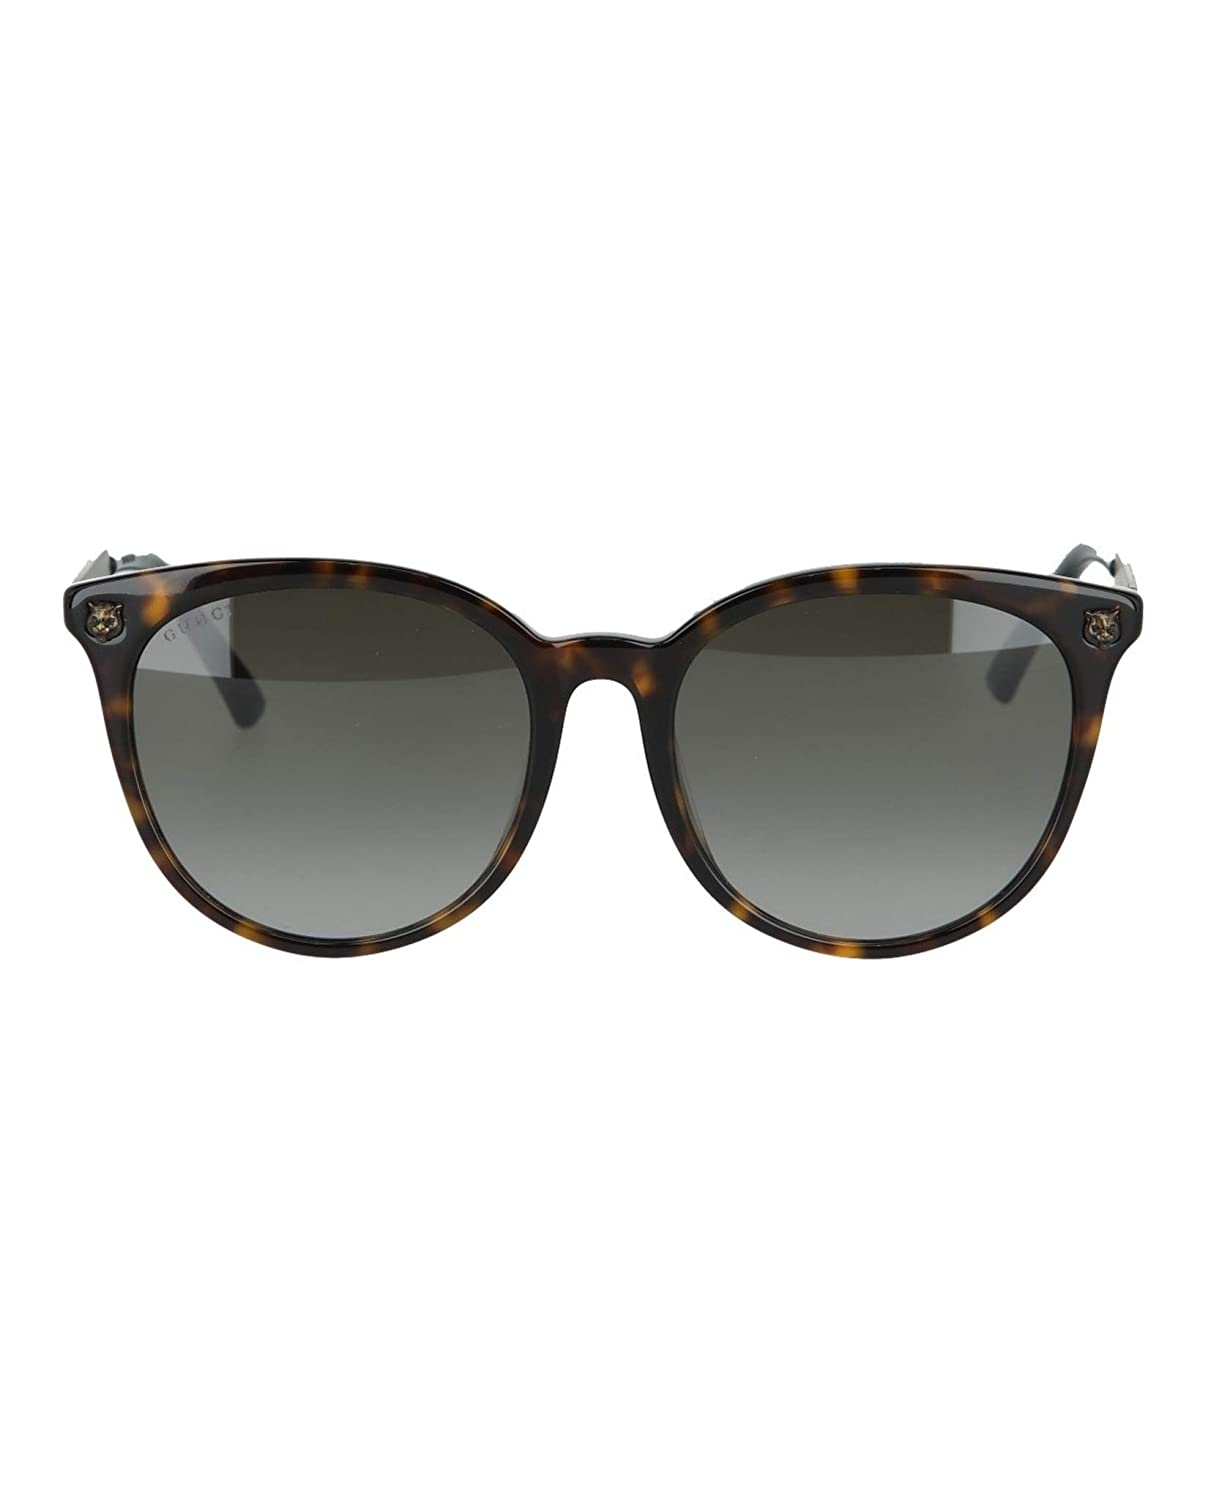 4a3d361be21 Amazon.com  Gucci Womens Round Oval Sunglasses GG0224SK-30001800-002   Clothing